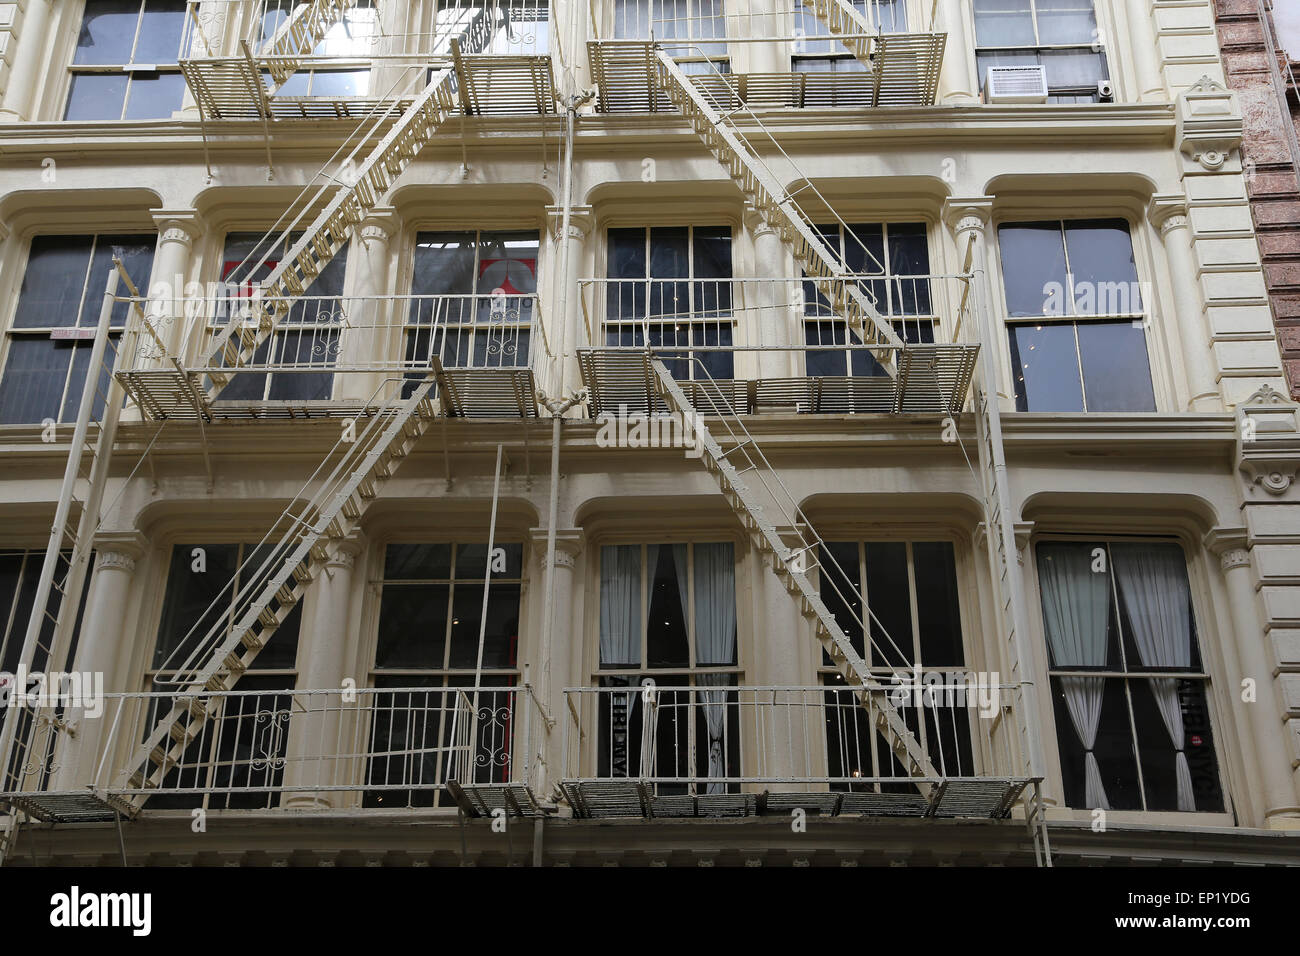 United States. New York City. Lower Manhattan. Soho. Common-style fire escapes. - Stock Image